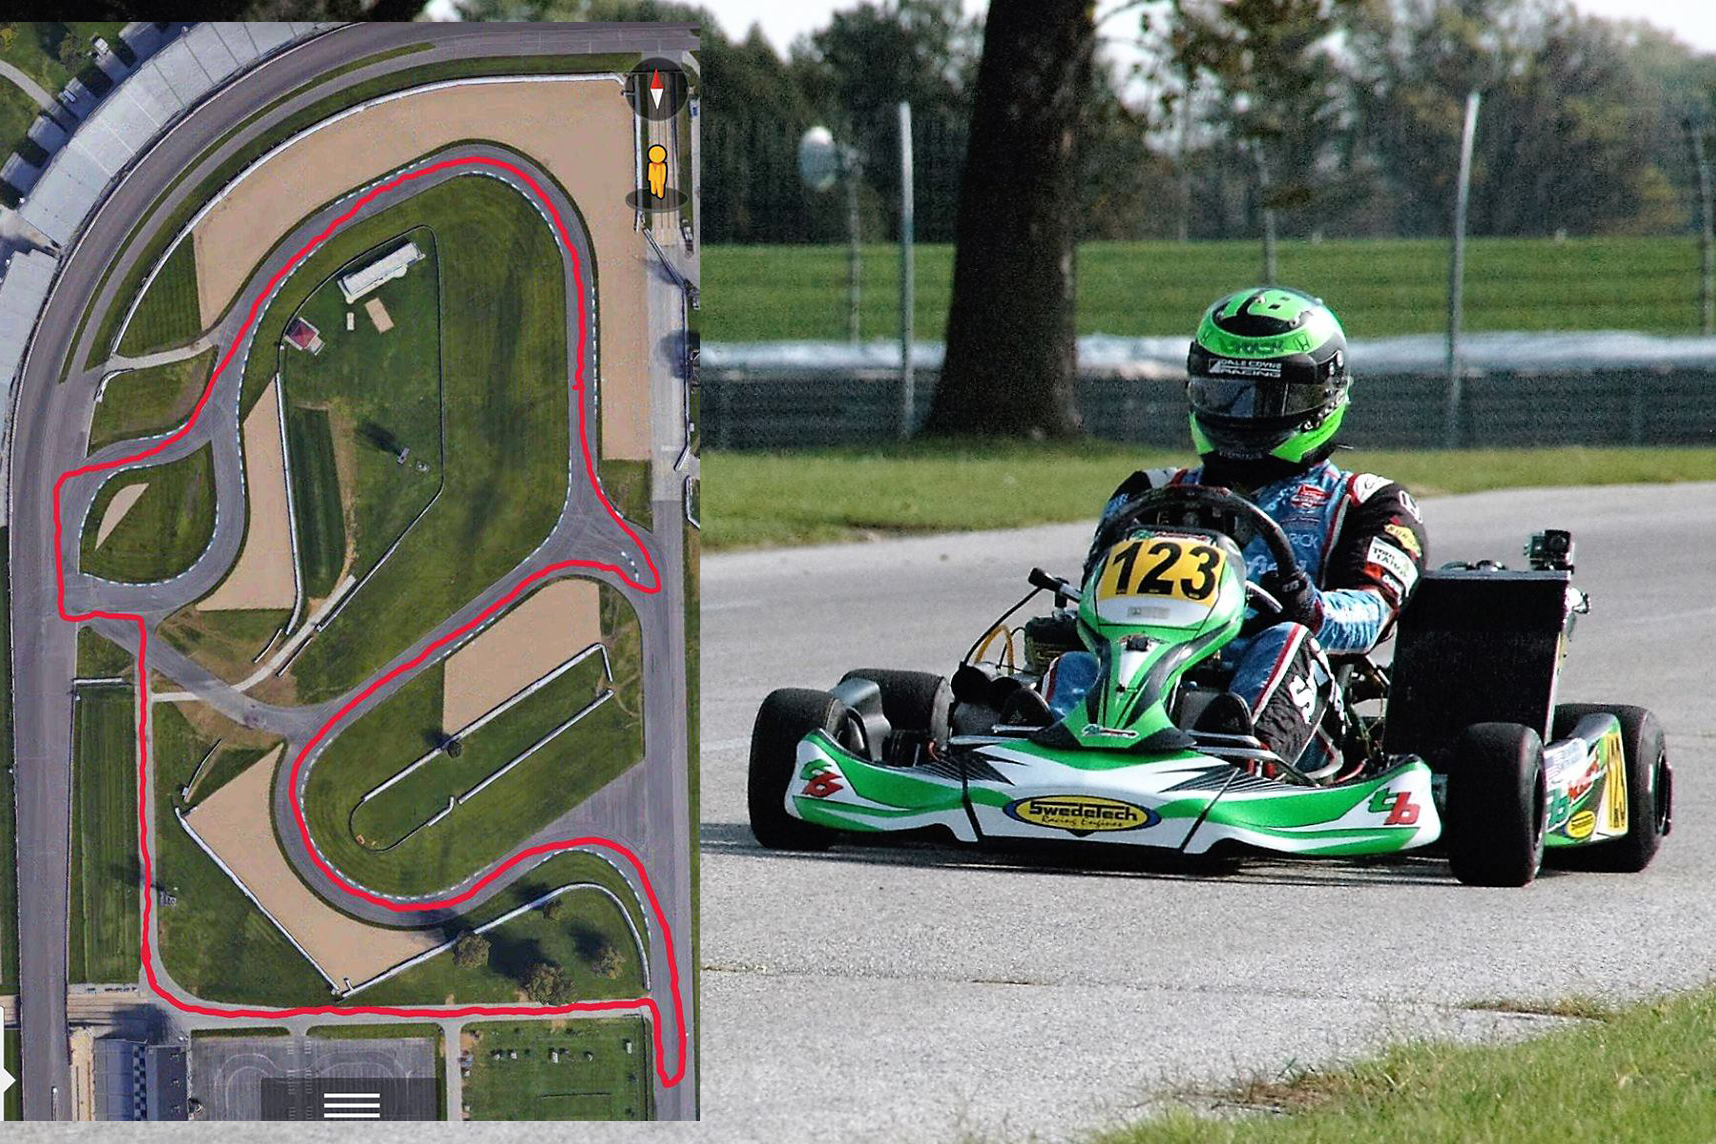 Go Karts Indianapolis >> Kart Race In Planning Stages For Indianapolis Motor Speedway